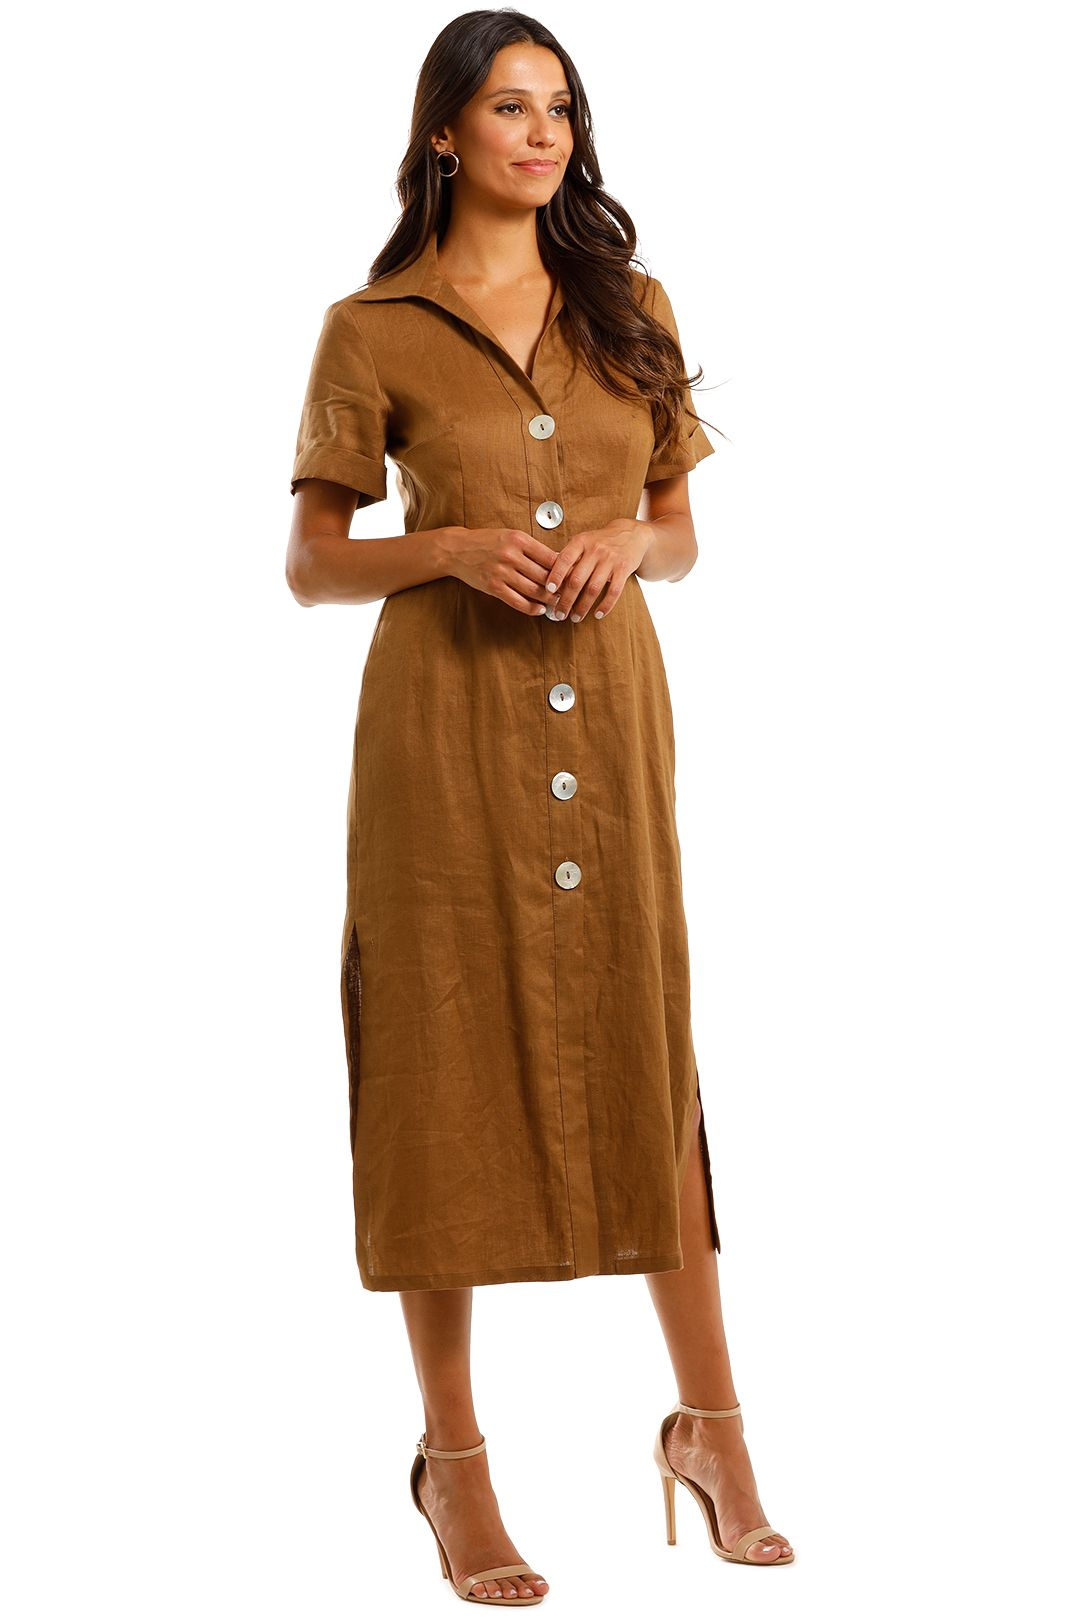 Jillian Boustred Safari Dress Coffee Brown Midi Dress